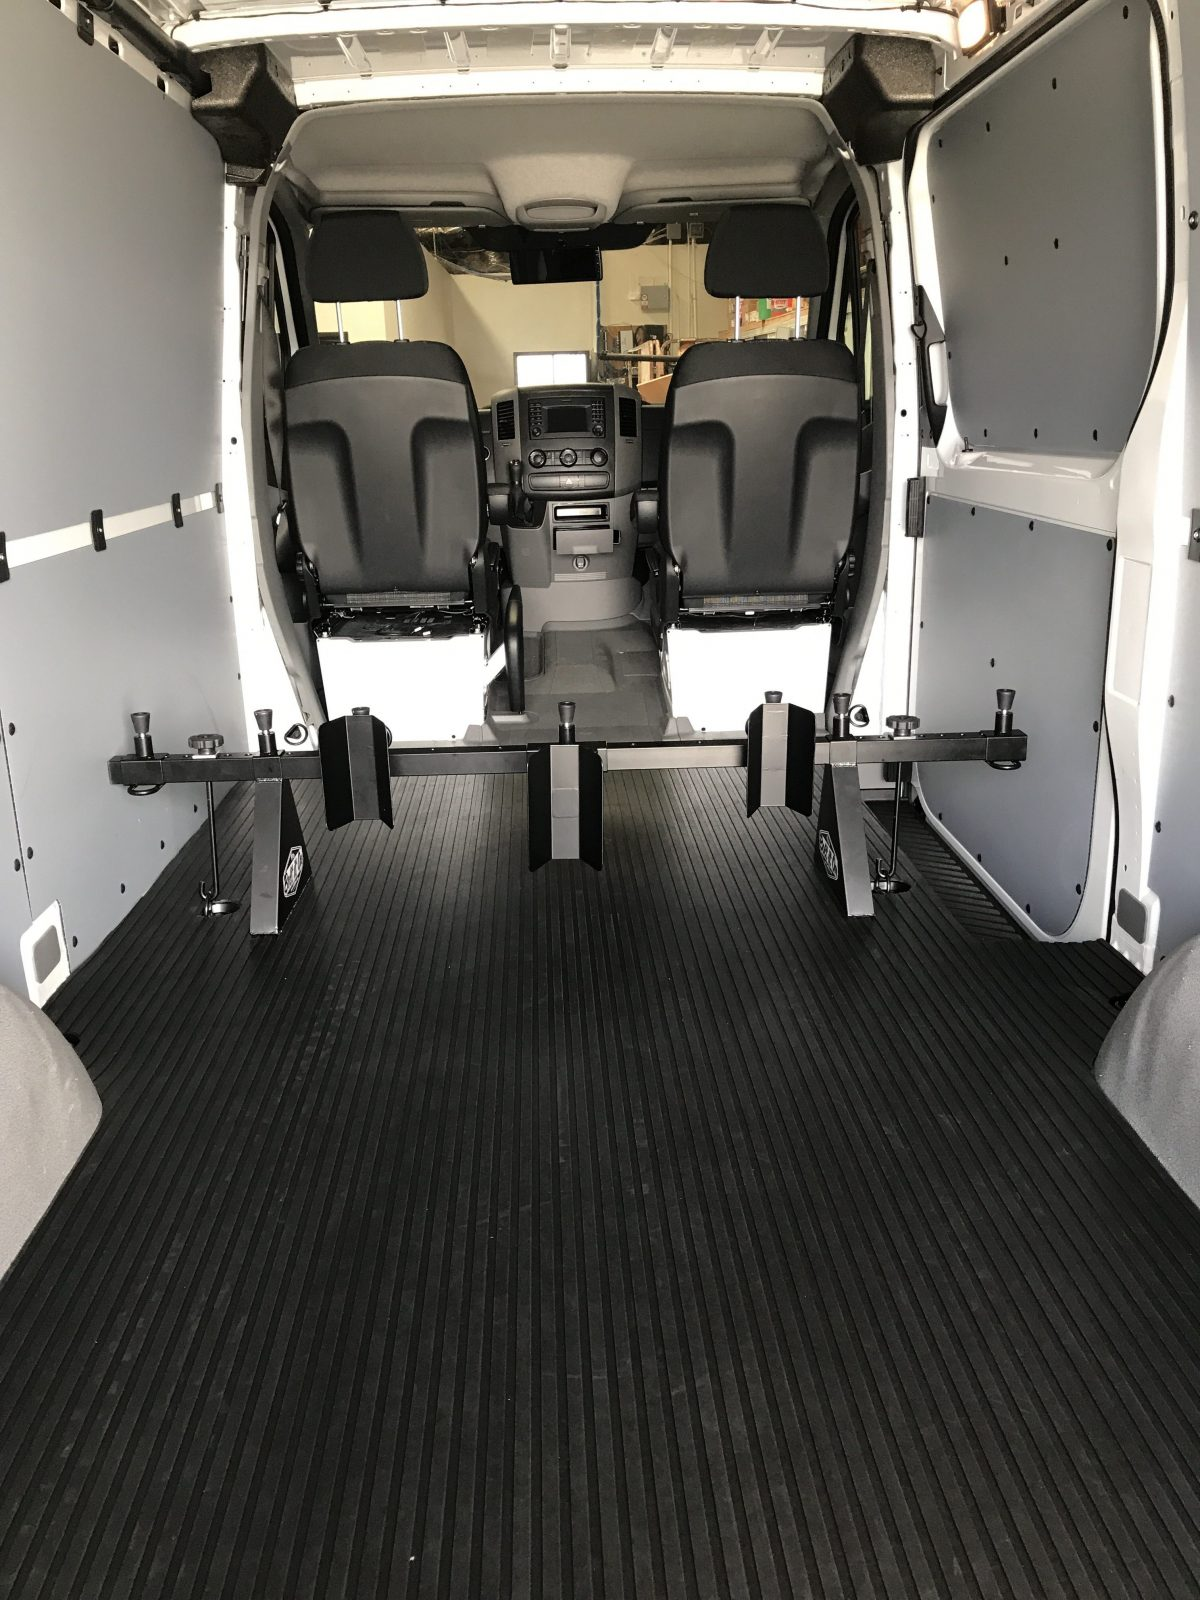 Mercedes Sprinter Van >> Mercedes Sprinter Van - Three Dirt Bike - Motorcycle Tie-Down Carrier Systems